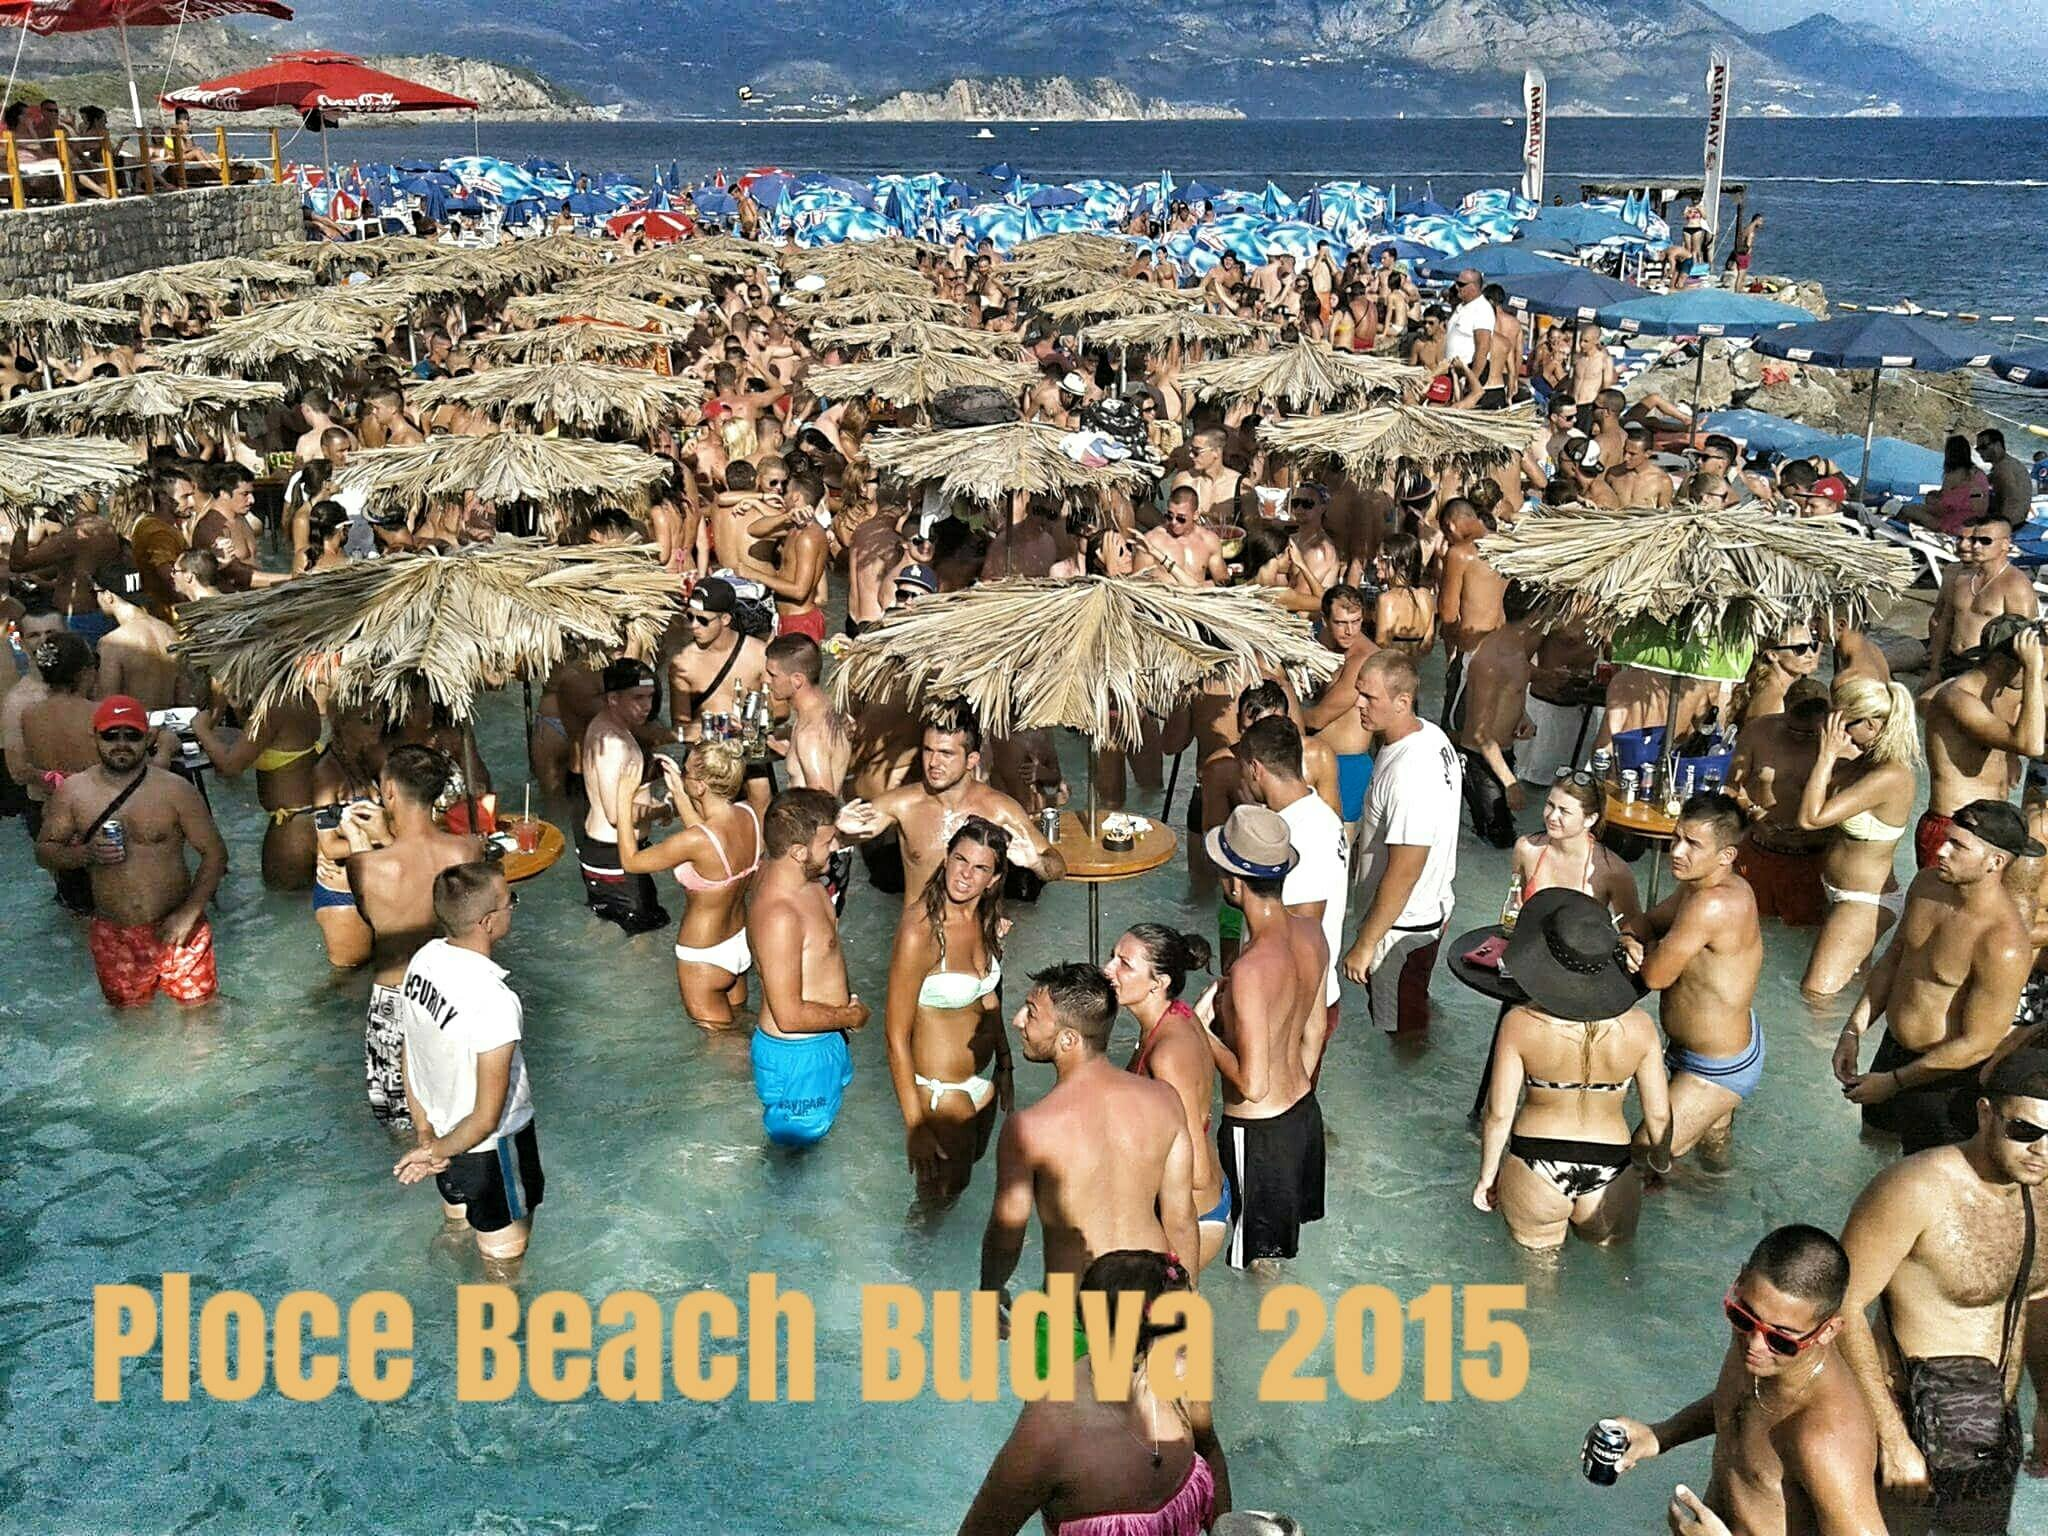 Ploče Beach Budva, Ploce beach Budva summer 2015 - YouTube